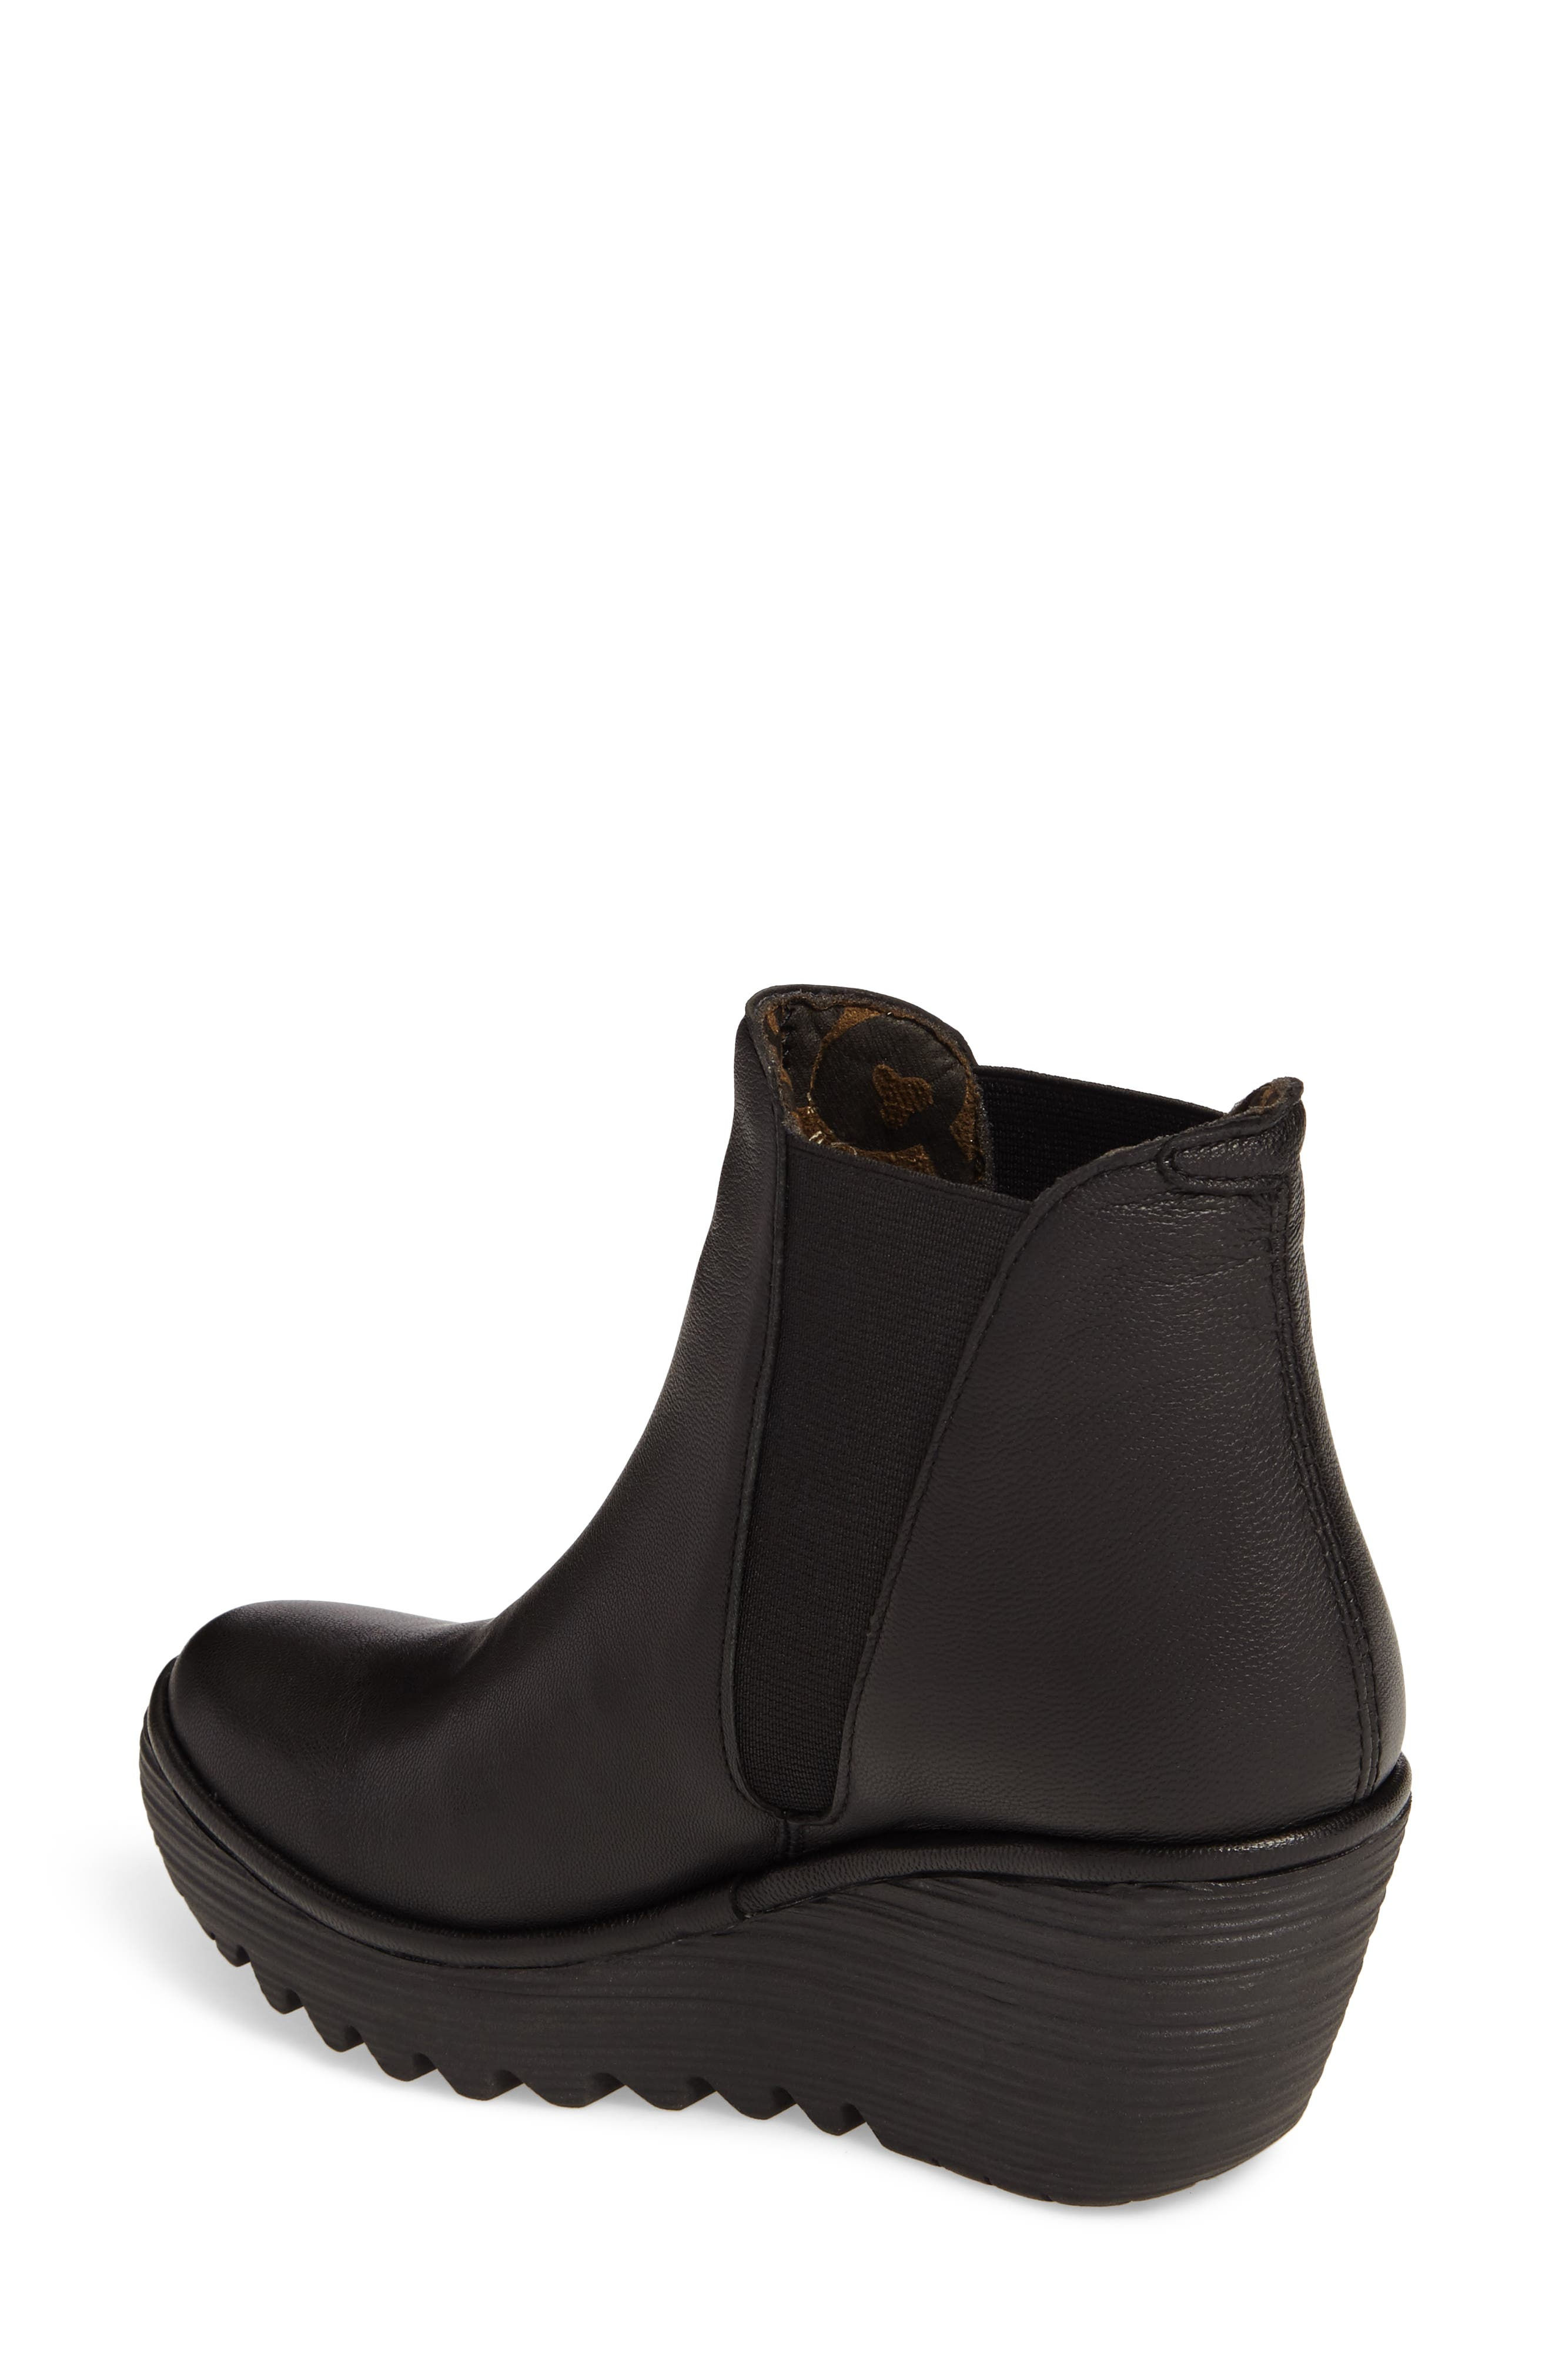 Yoss Wedge Bootie,                             Alternate thumbnail 2, color,                             001